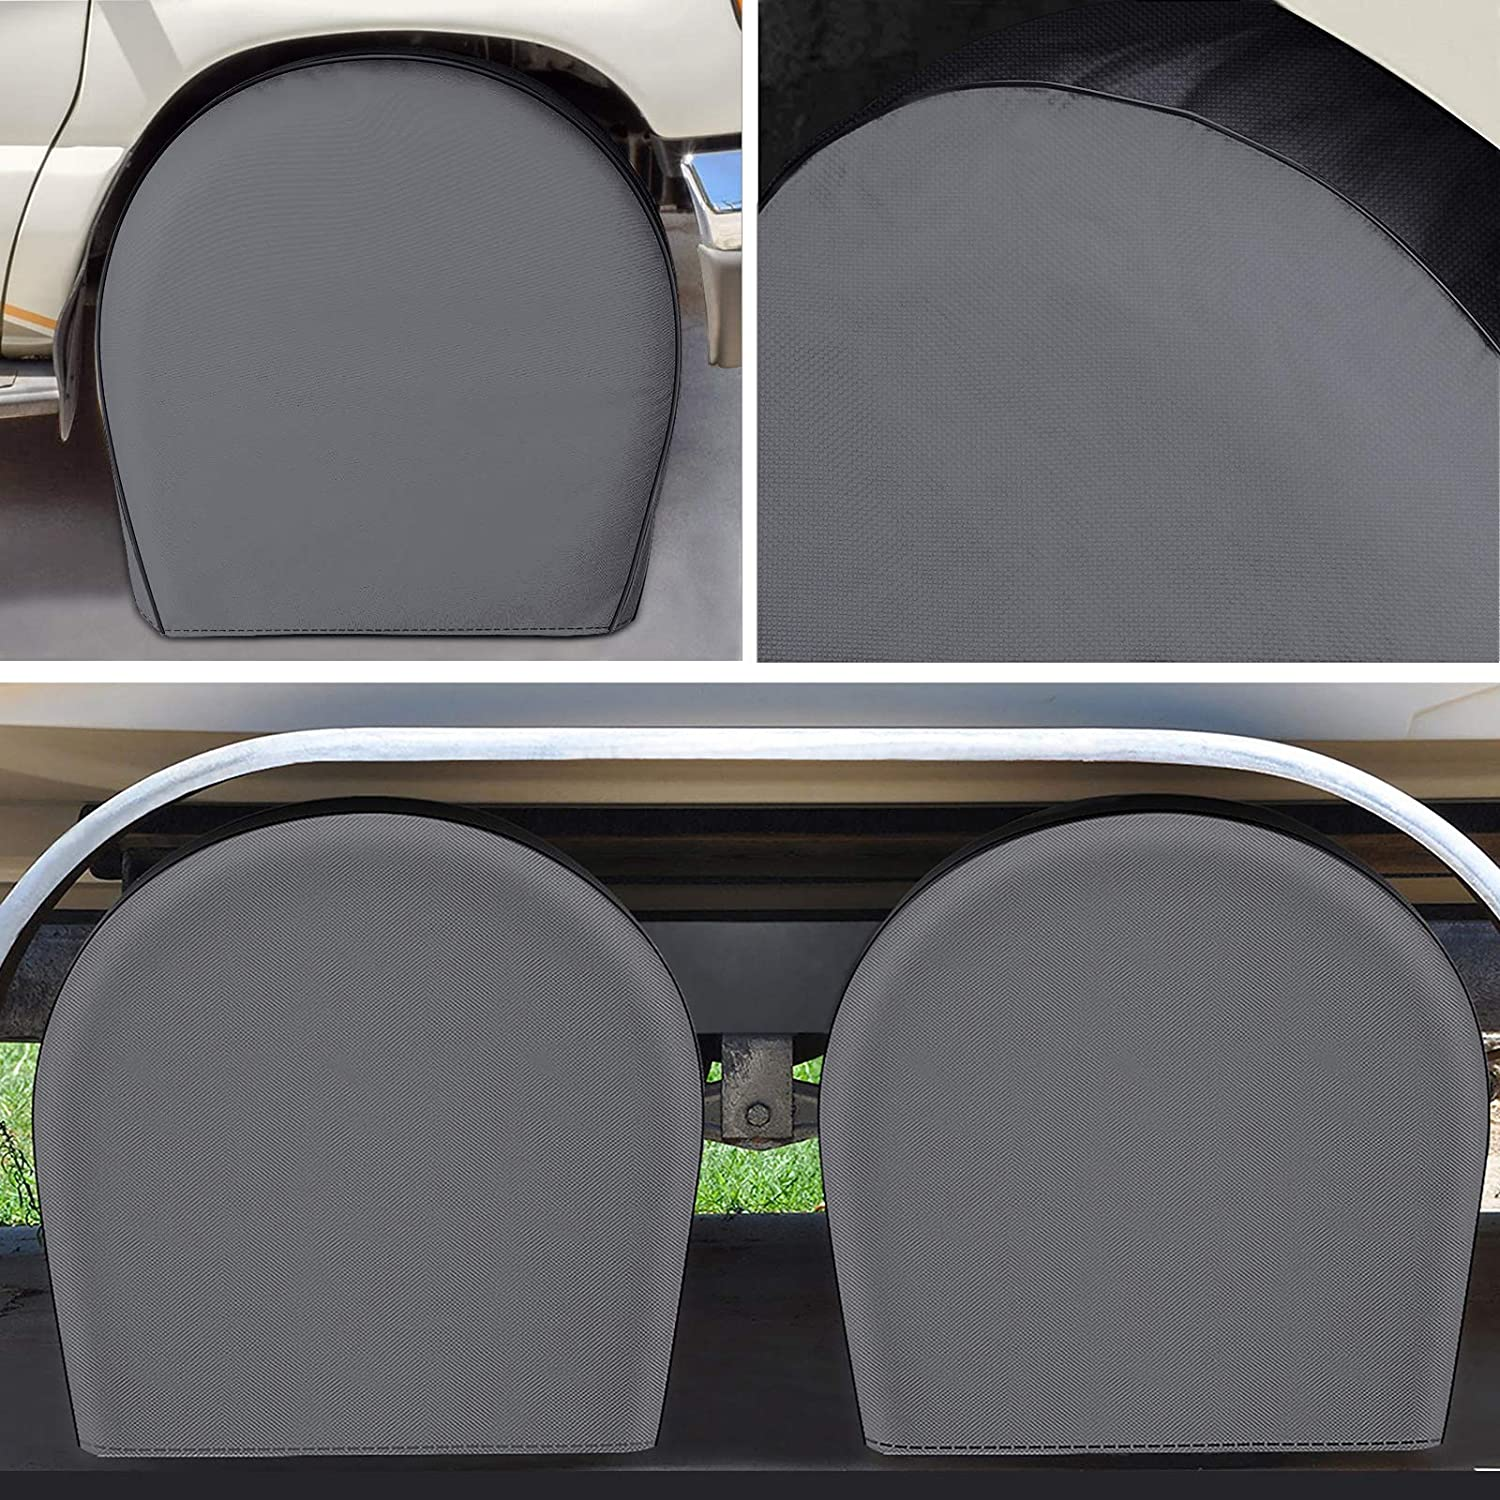 Zuihao Upgraded Heavy Duty 900D RV Tire Covers Set of 4 for Trailers - Waterproof PVC Coating Motorhome Camper Tire Wheel Portector, Fits 40-42 inches Tires